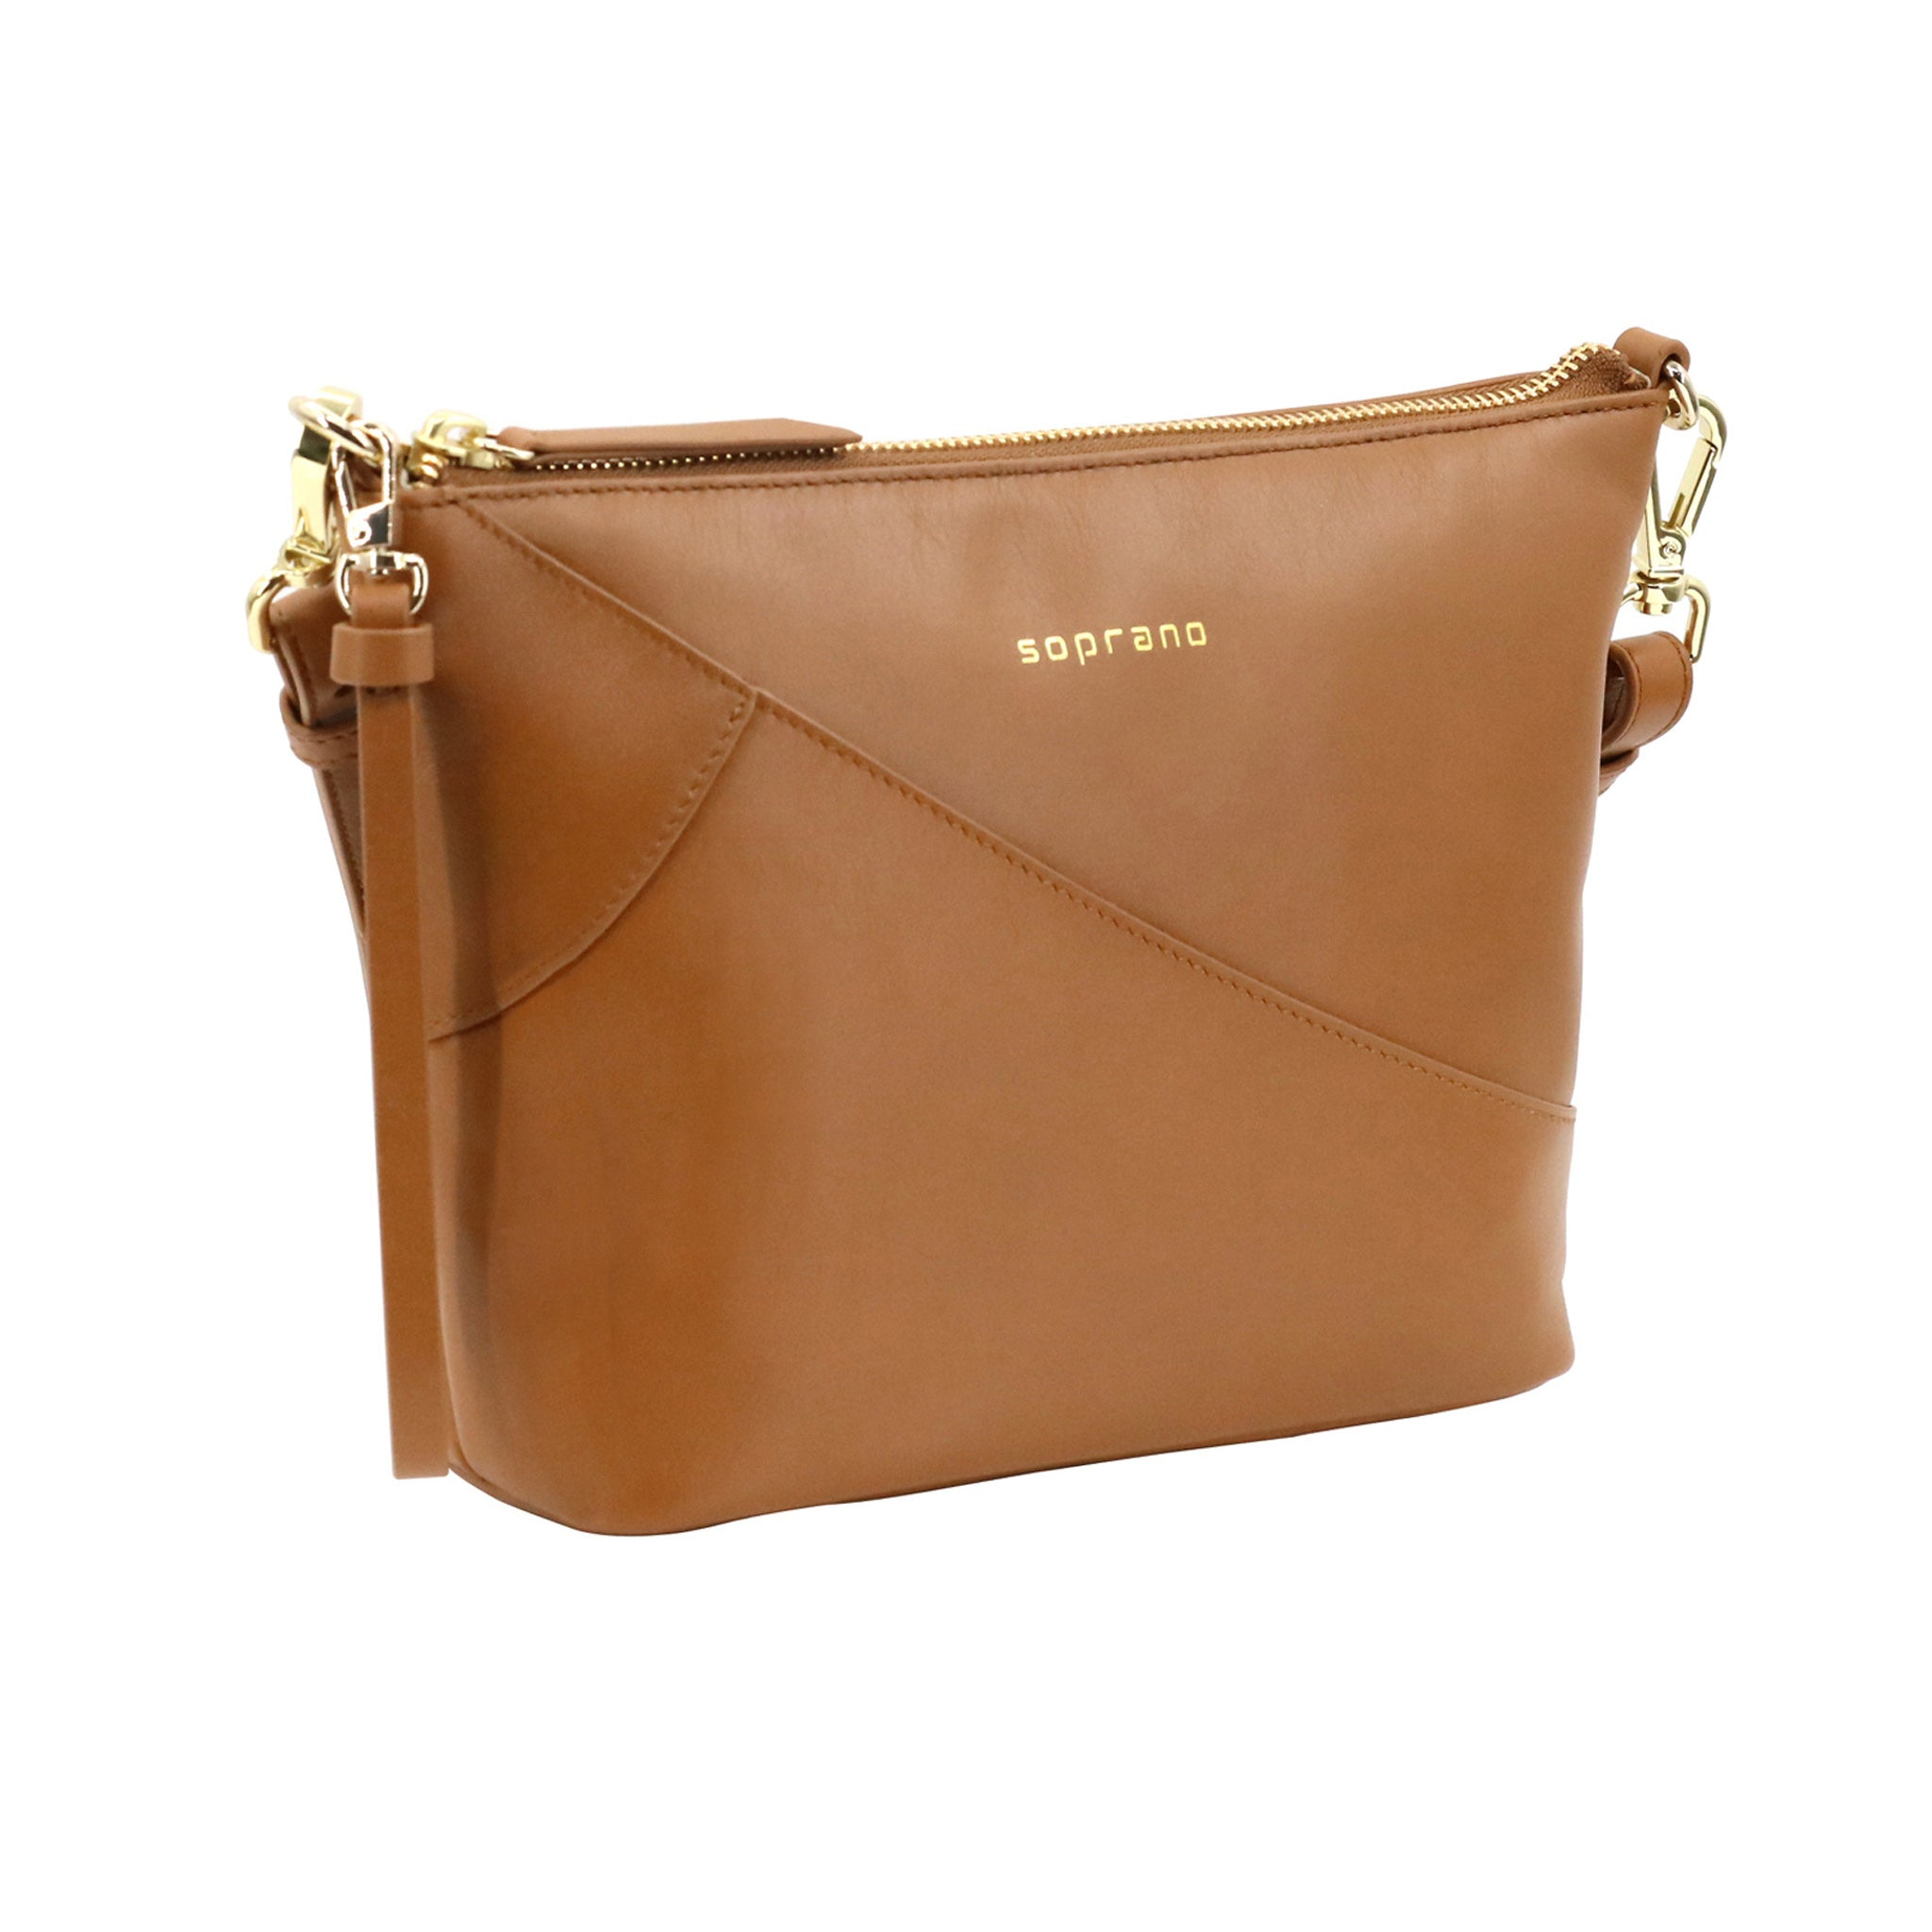 Multifunction Crossbody with Detachable Wrist Strap